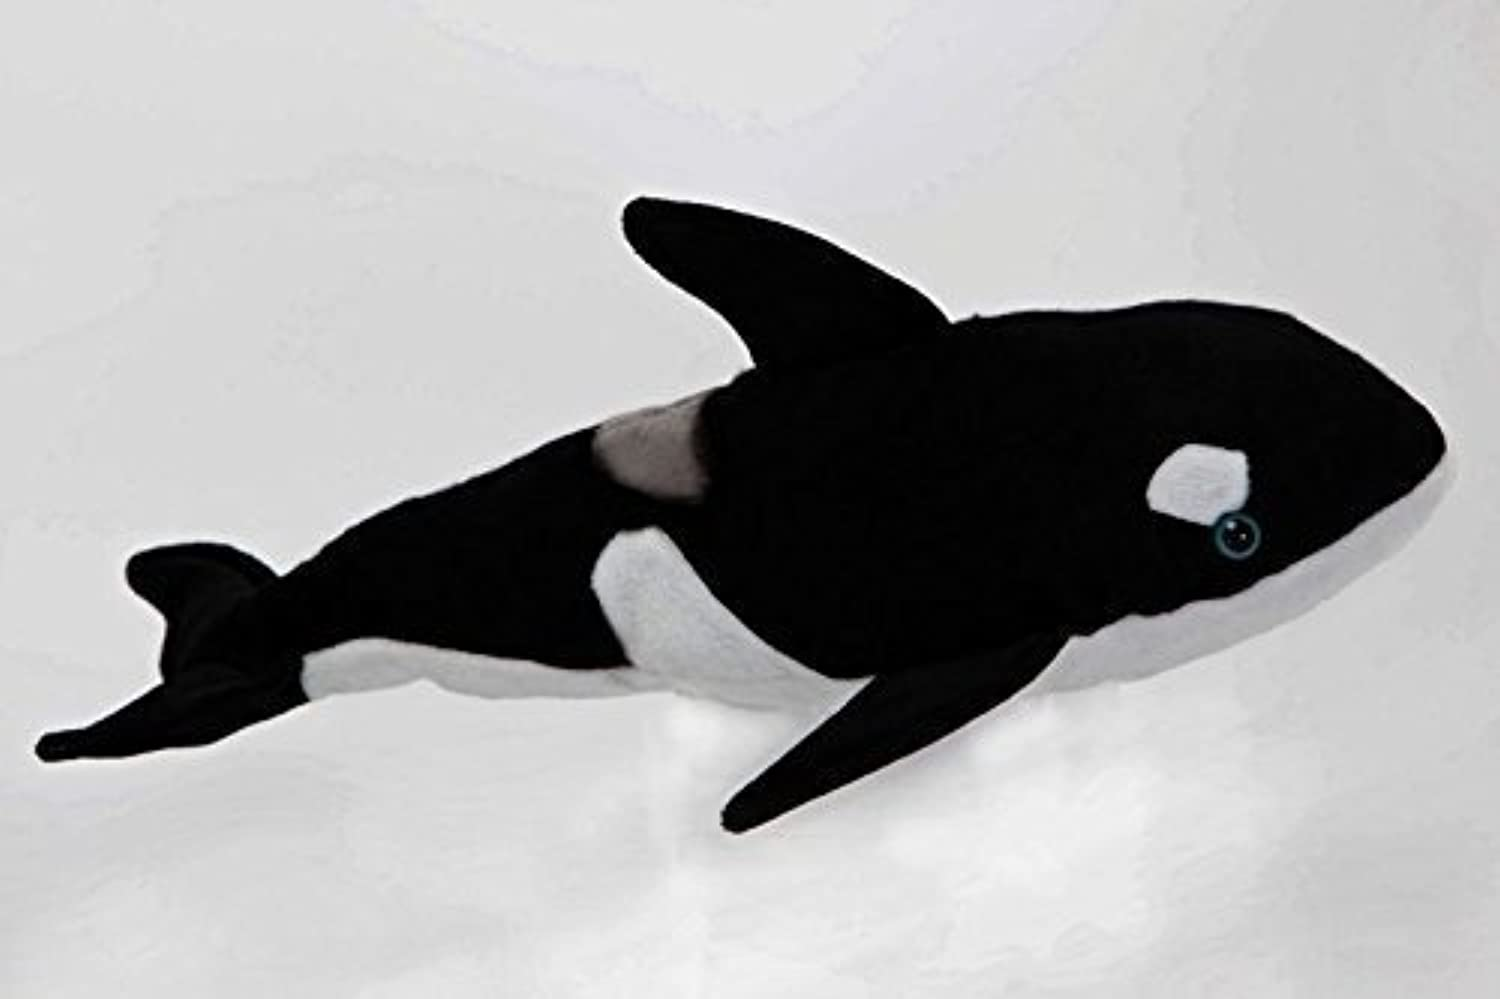 alta calidad y envío rápido Killer Whale 17 Stuffed Plush Animal Animal Animal - Cabin Critters Sea Life Collection by Cabin Critters  ahorra hasta un 70%